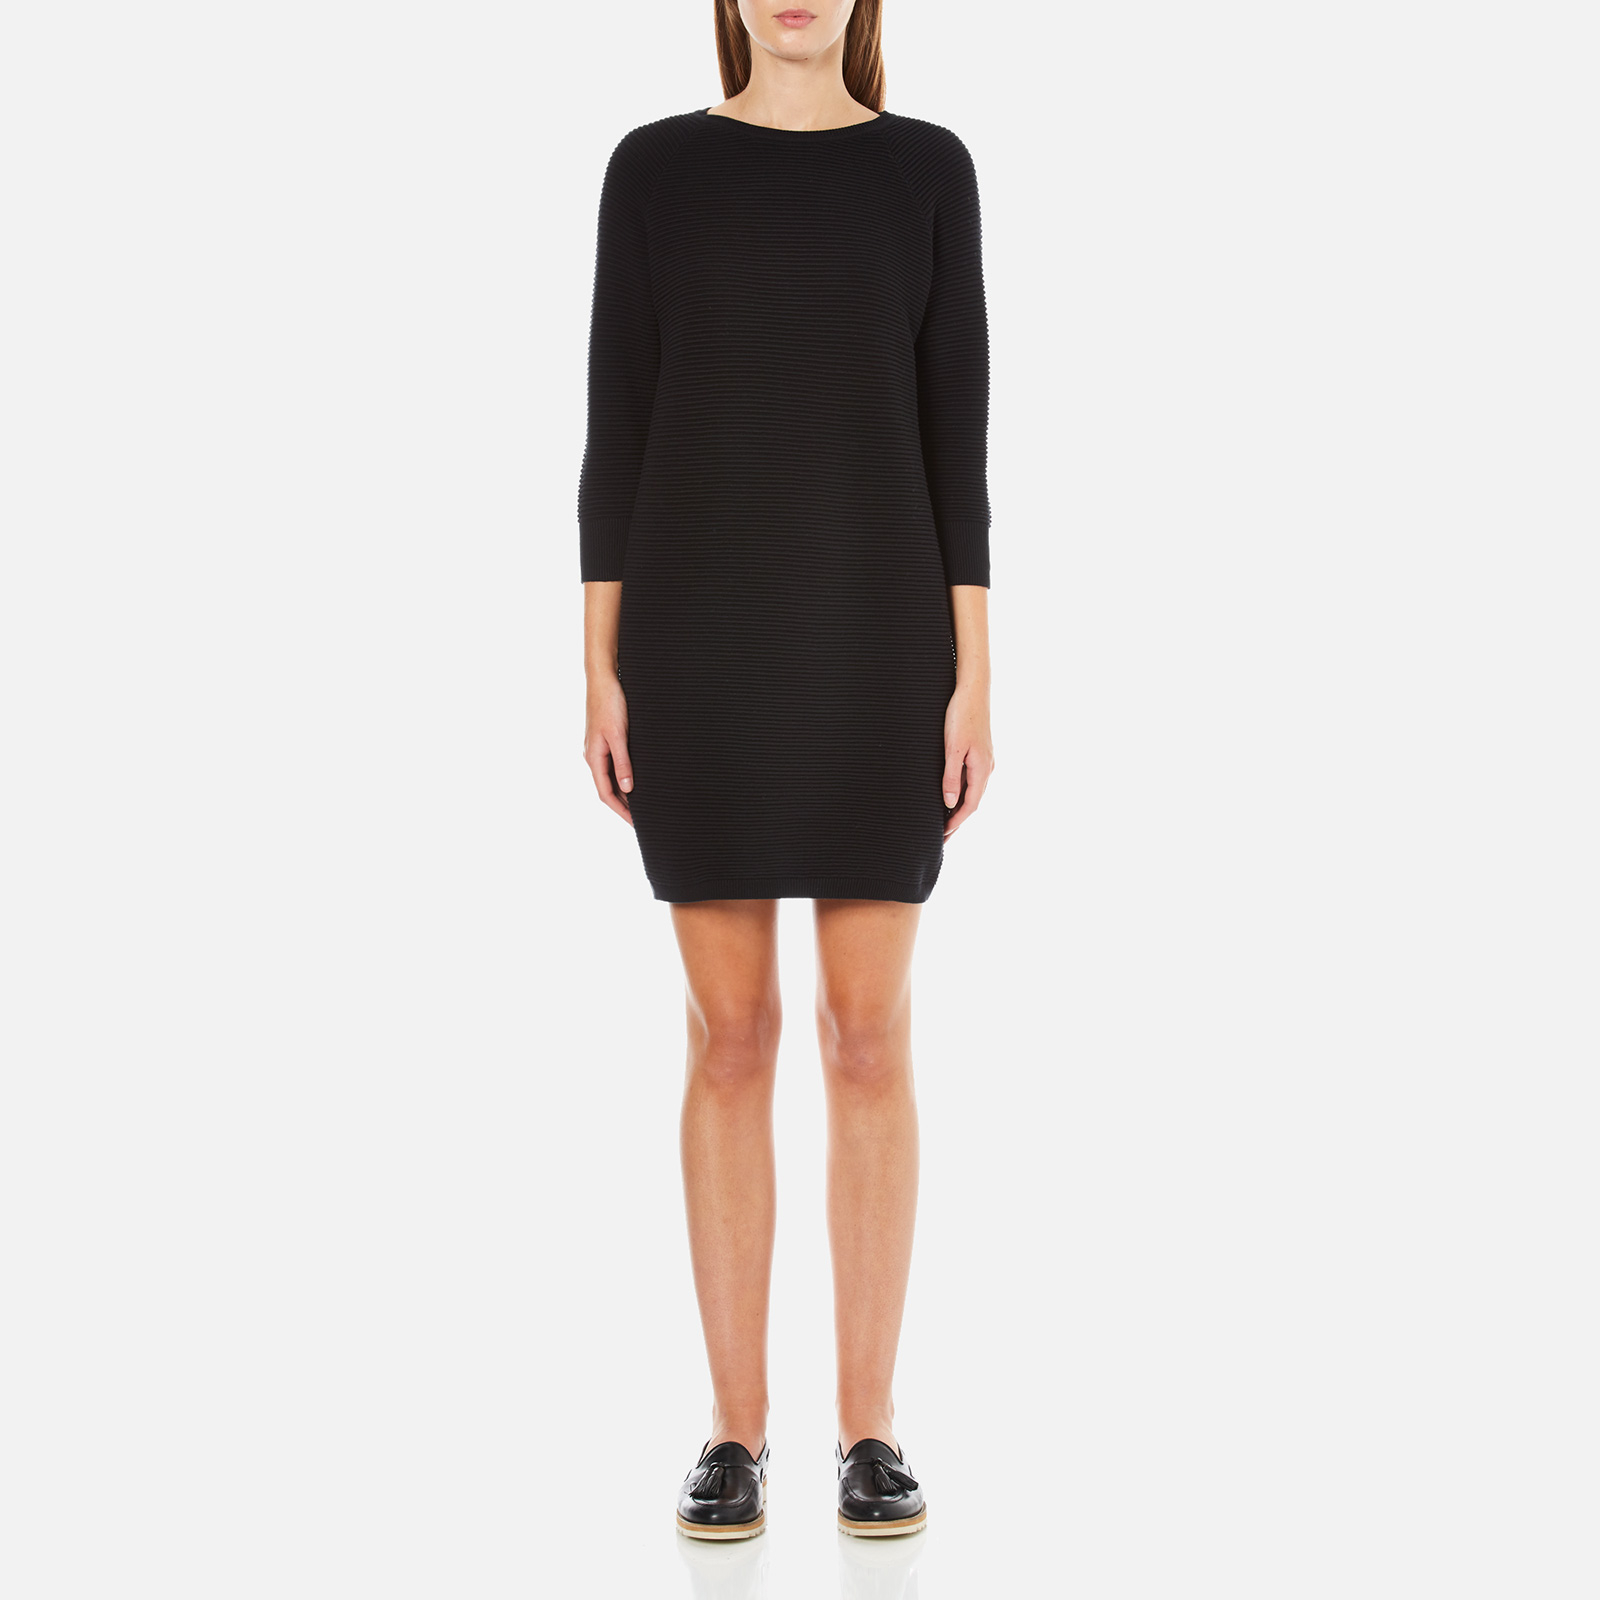 670e6fd0110 French Connection Women's Mozart Ripple Roundneck Jumper Dress - Black -  Free UK Delivery over £50